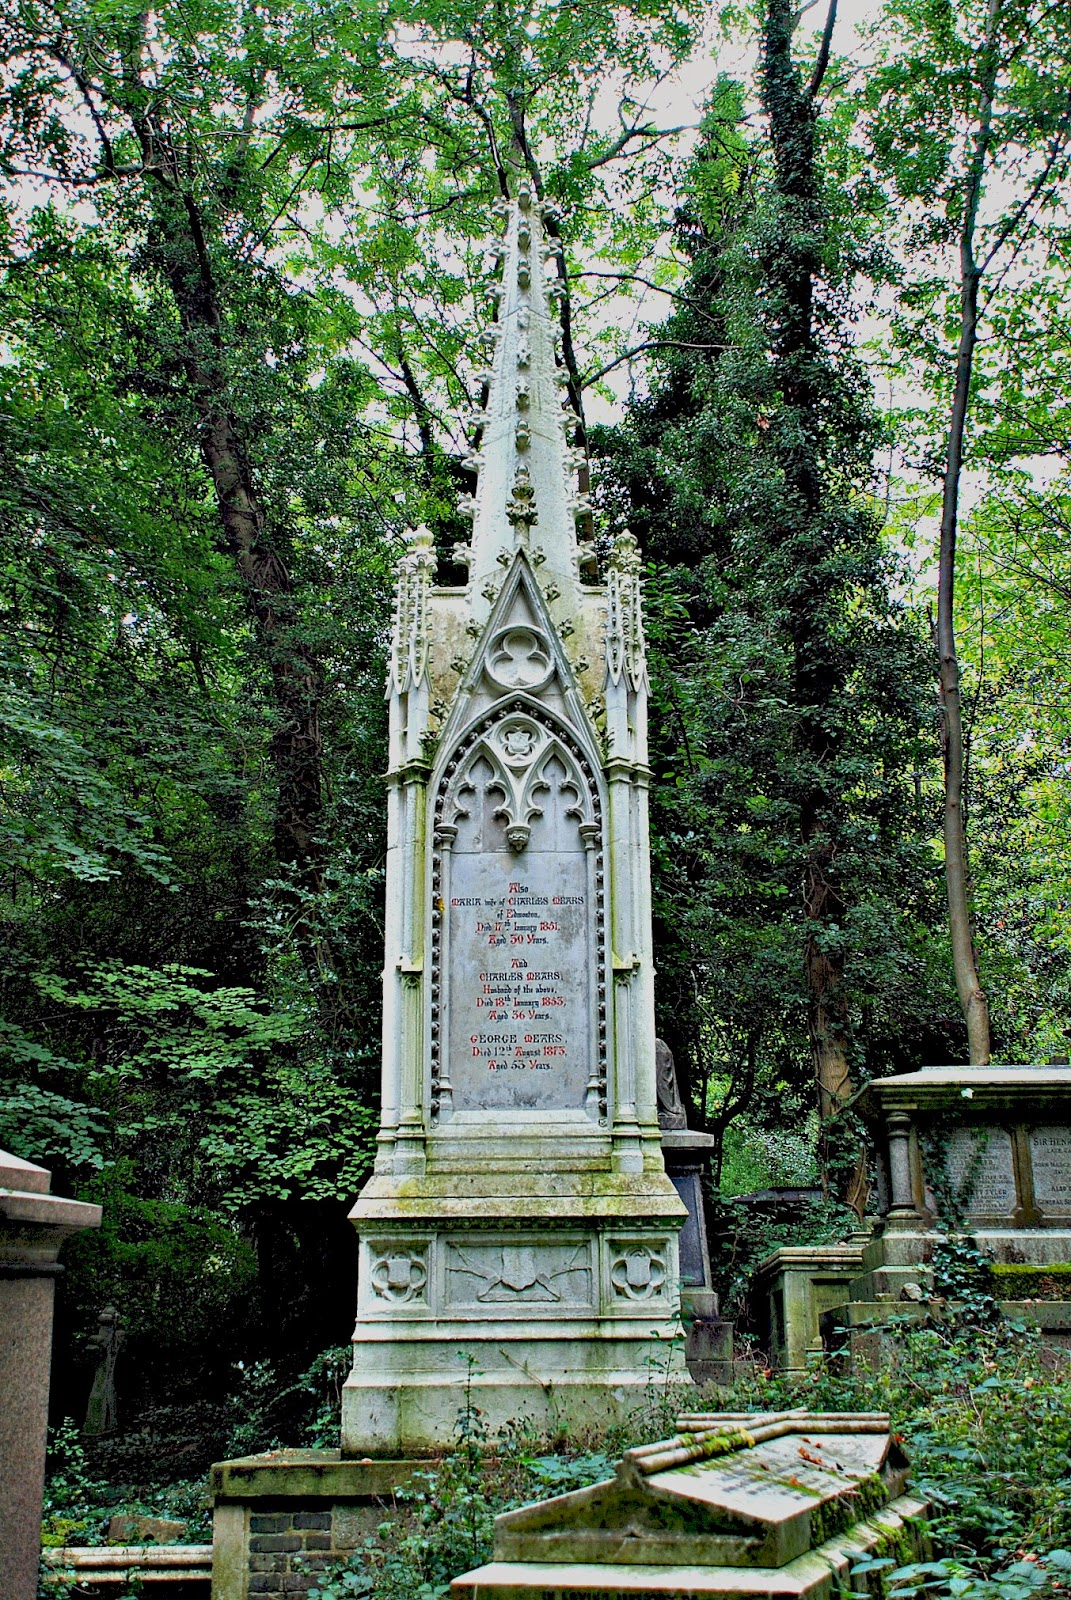 The Mears Memorial, Highgate Cemetery, London